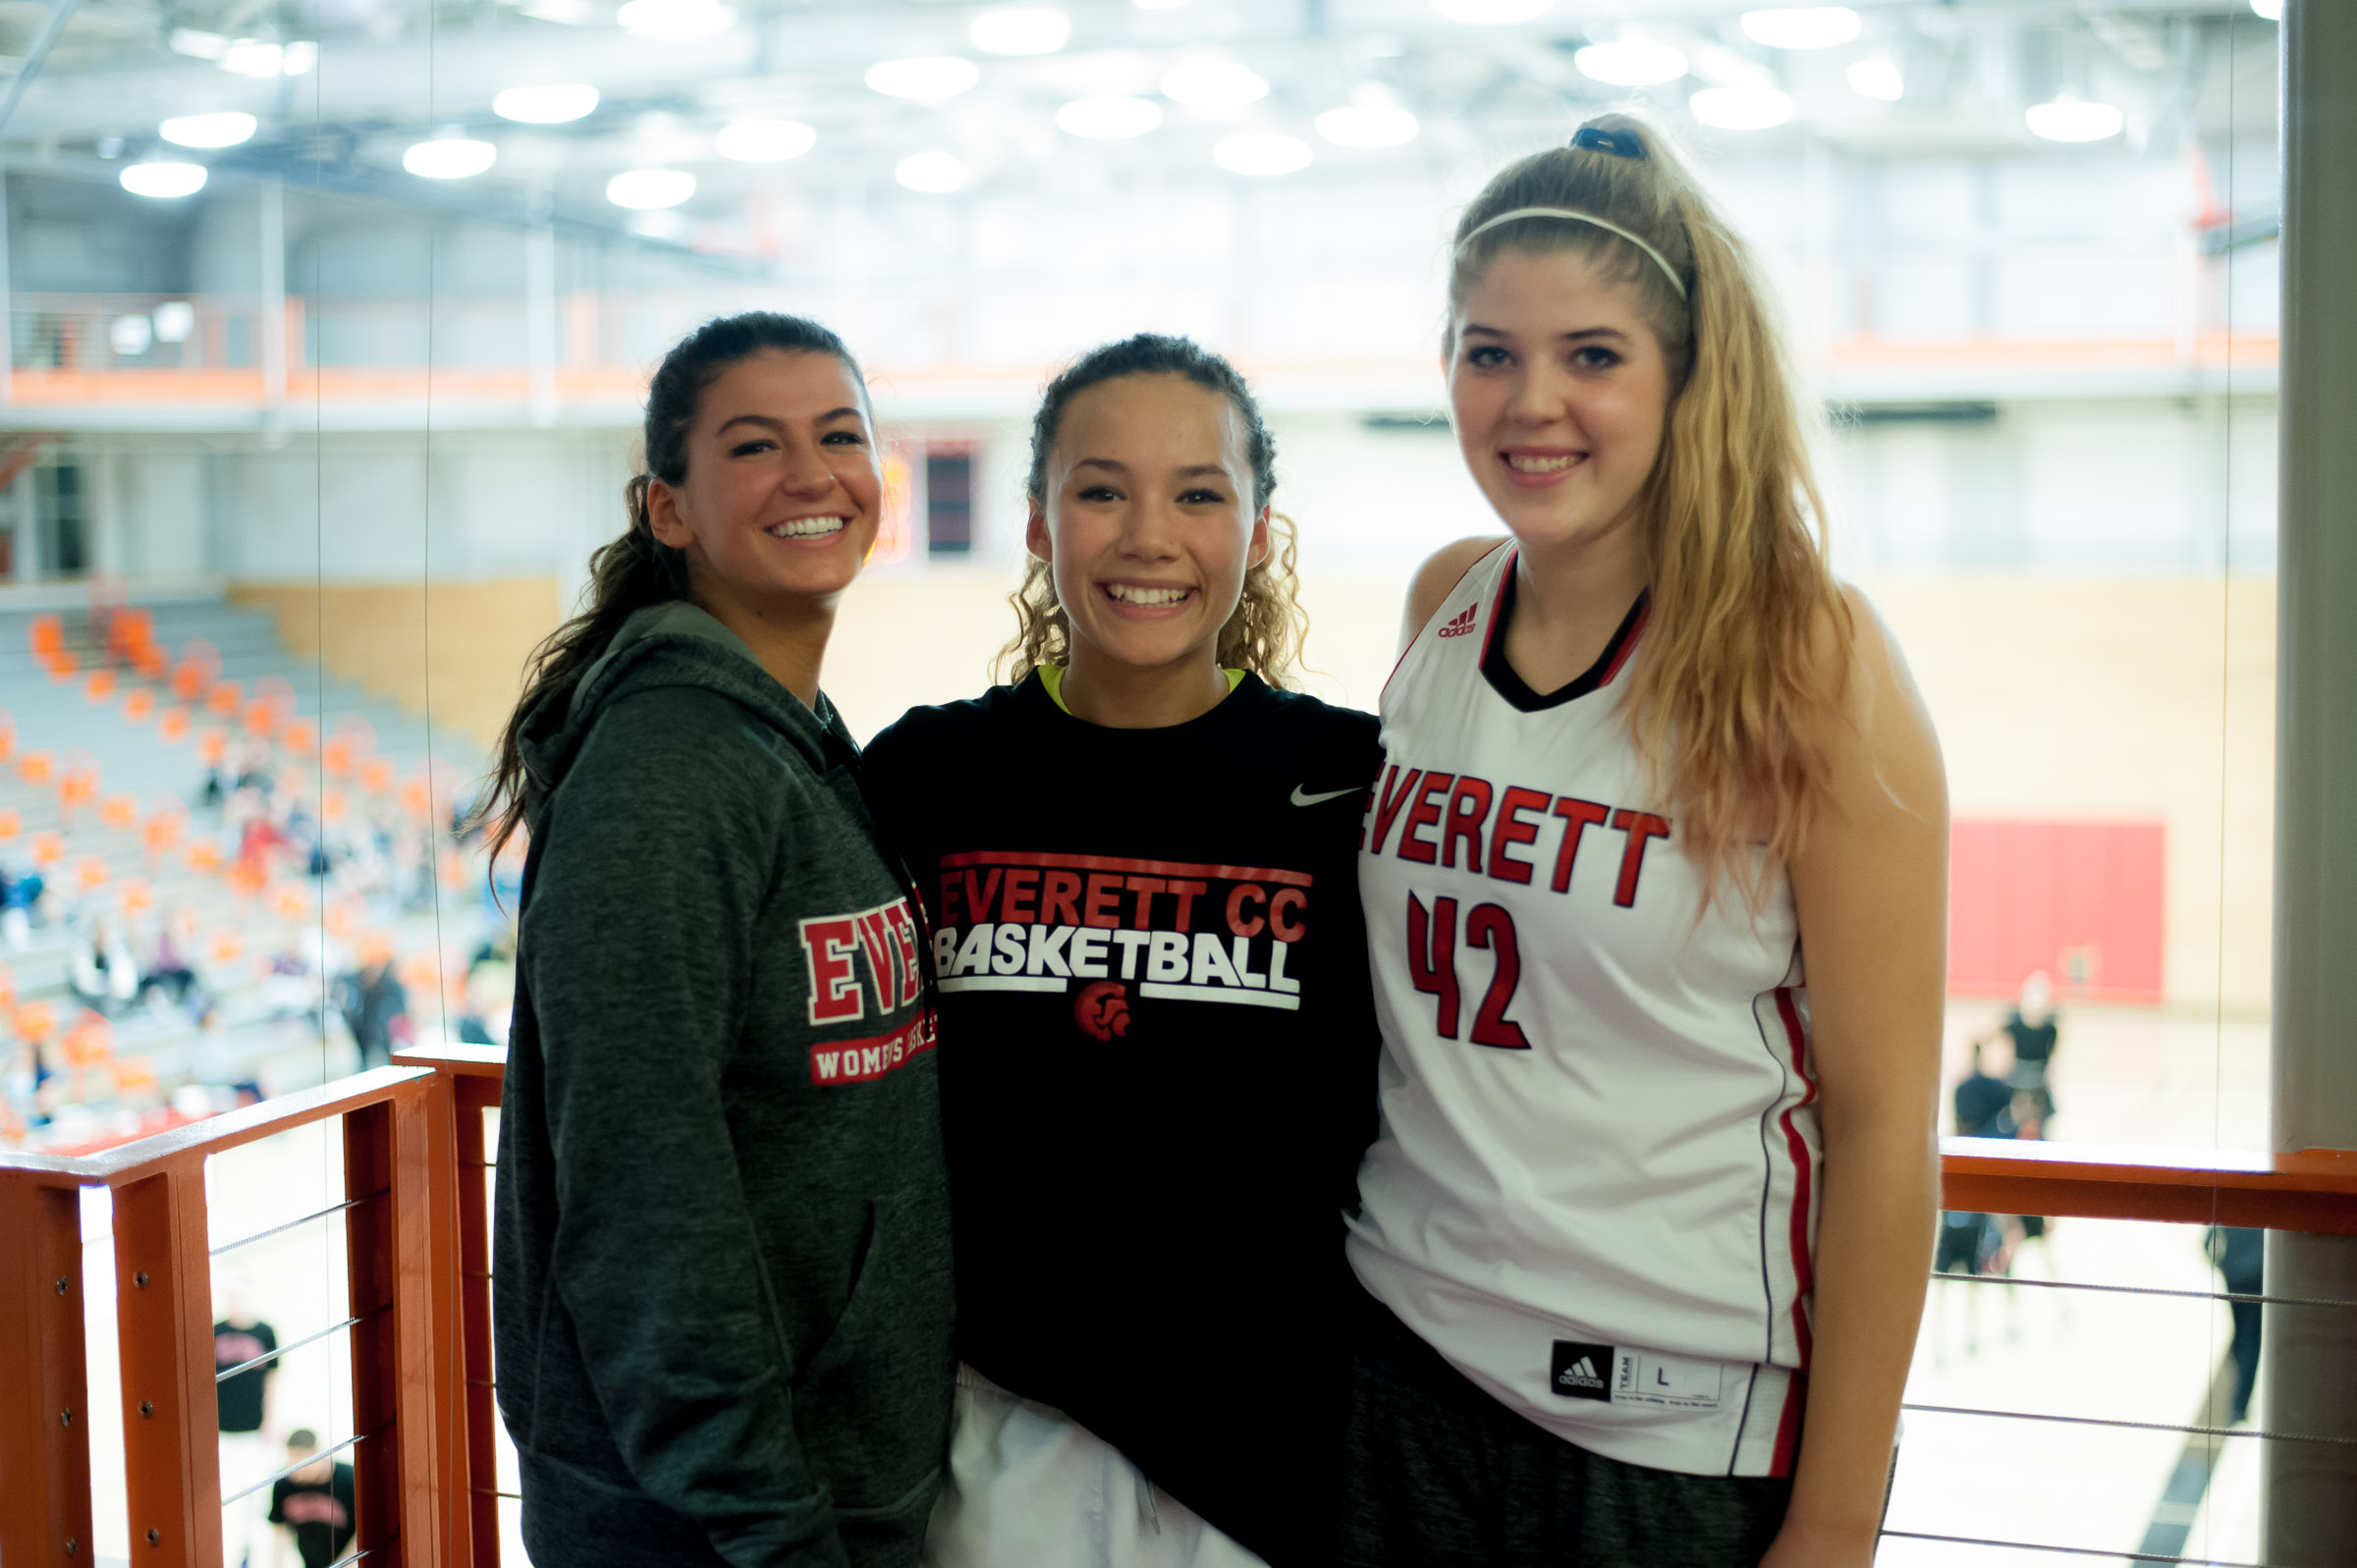 life after high school everett community college hoops home to life after high school everett community college hoops home to esd athletes my edmonds news